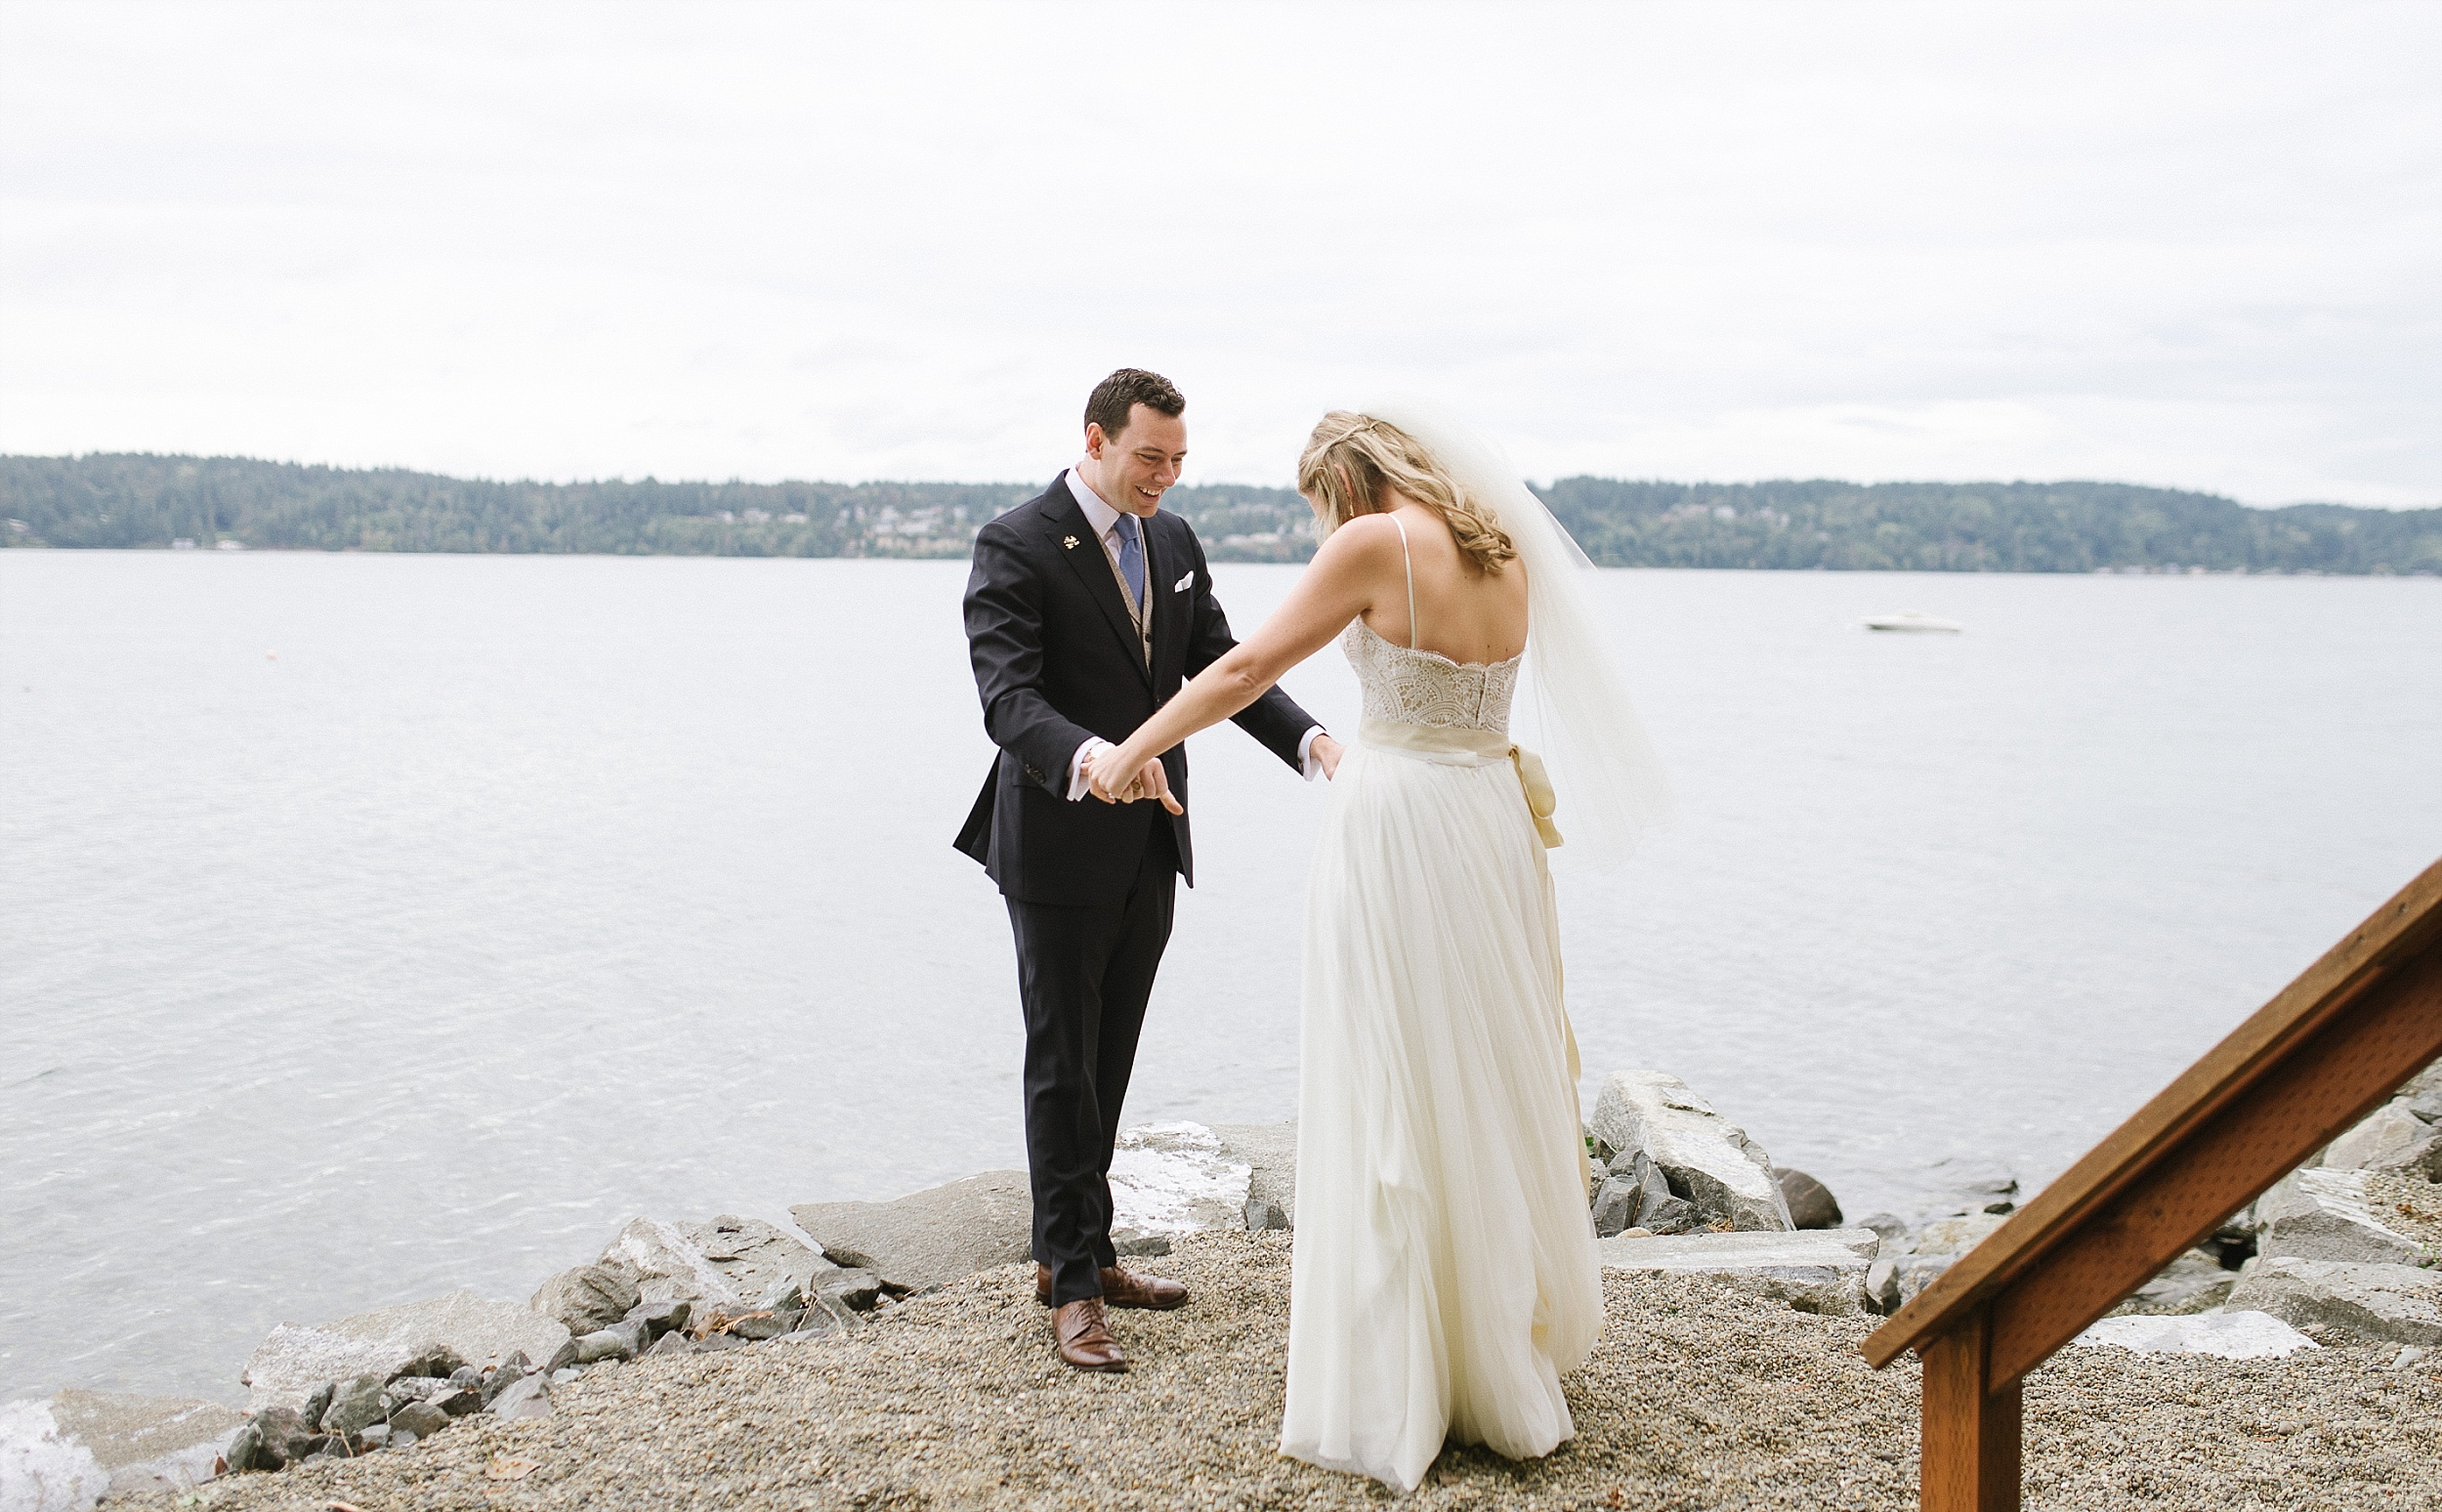 gig_harbor_washington_wedding_danacolin_cdp_0012.jpg